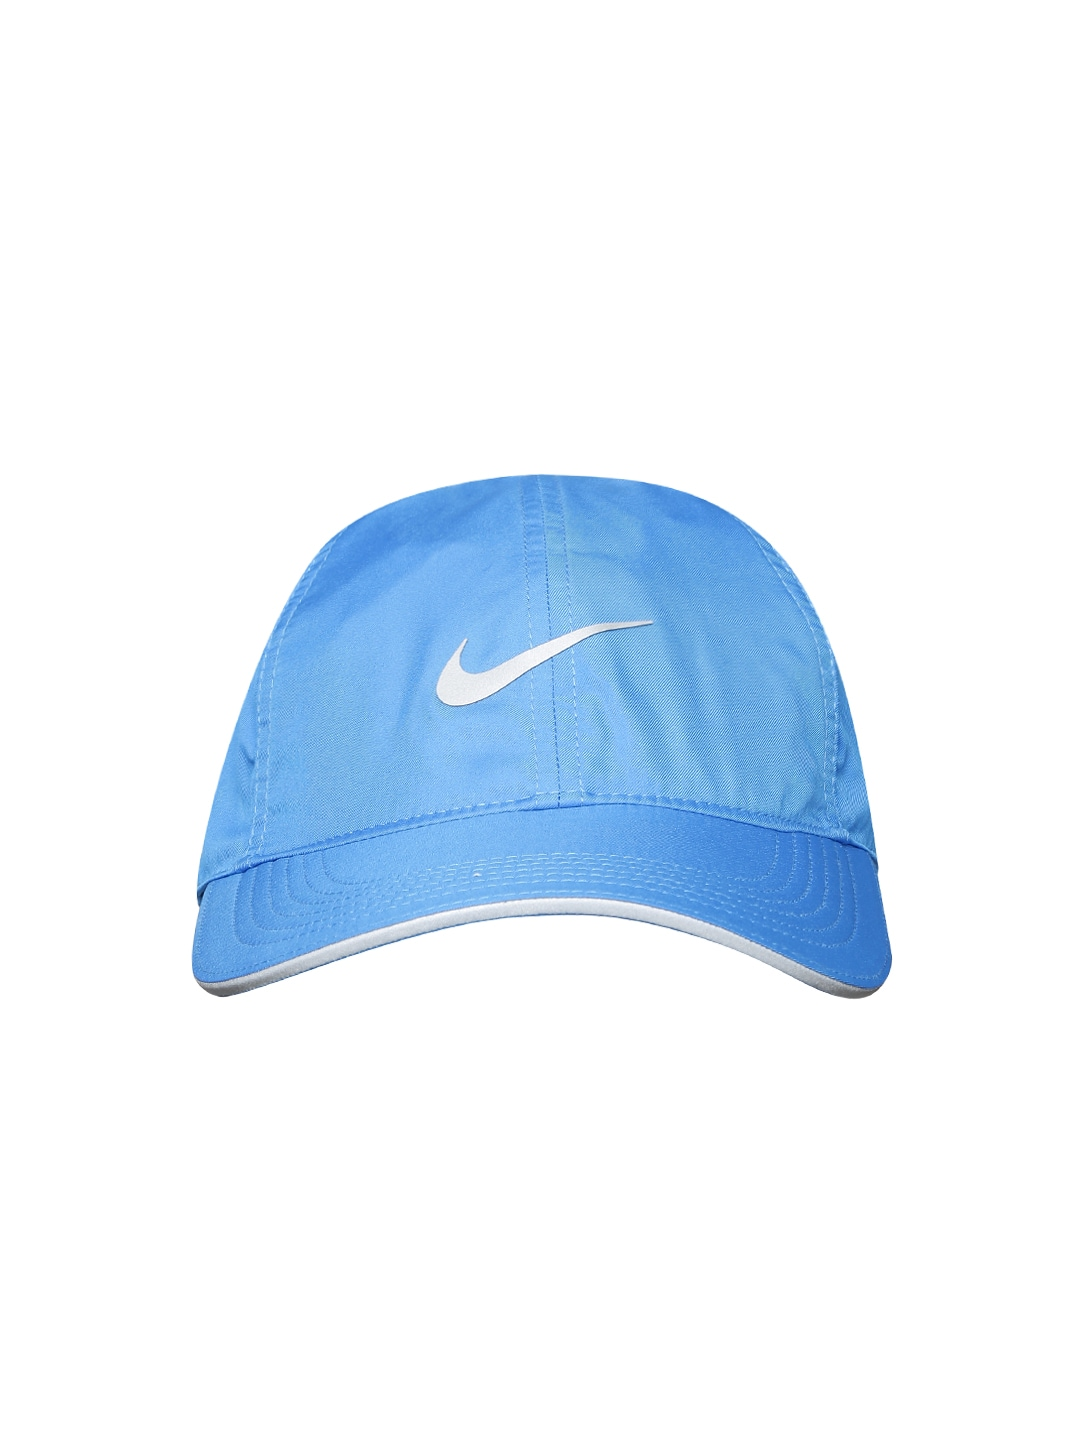 0d3624215c40 Women s Caps - Buy Caps for Women Online in India